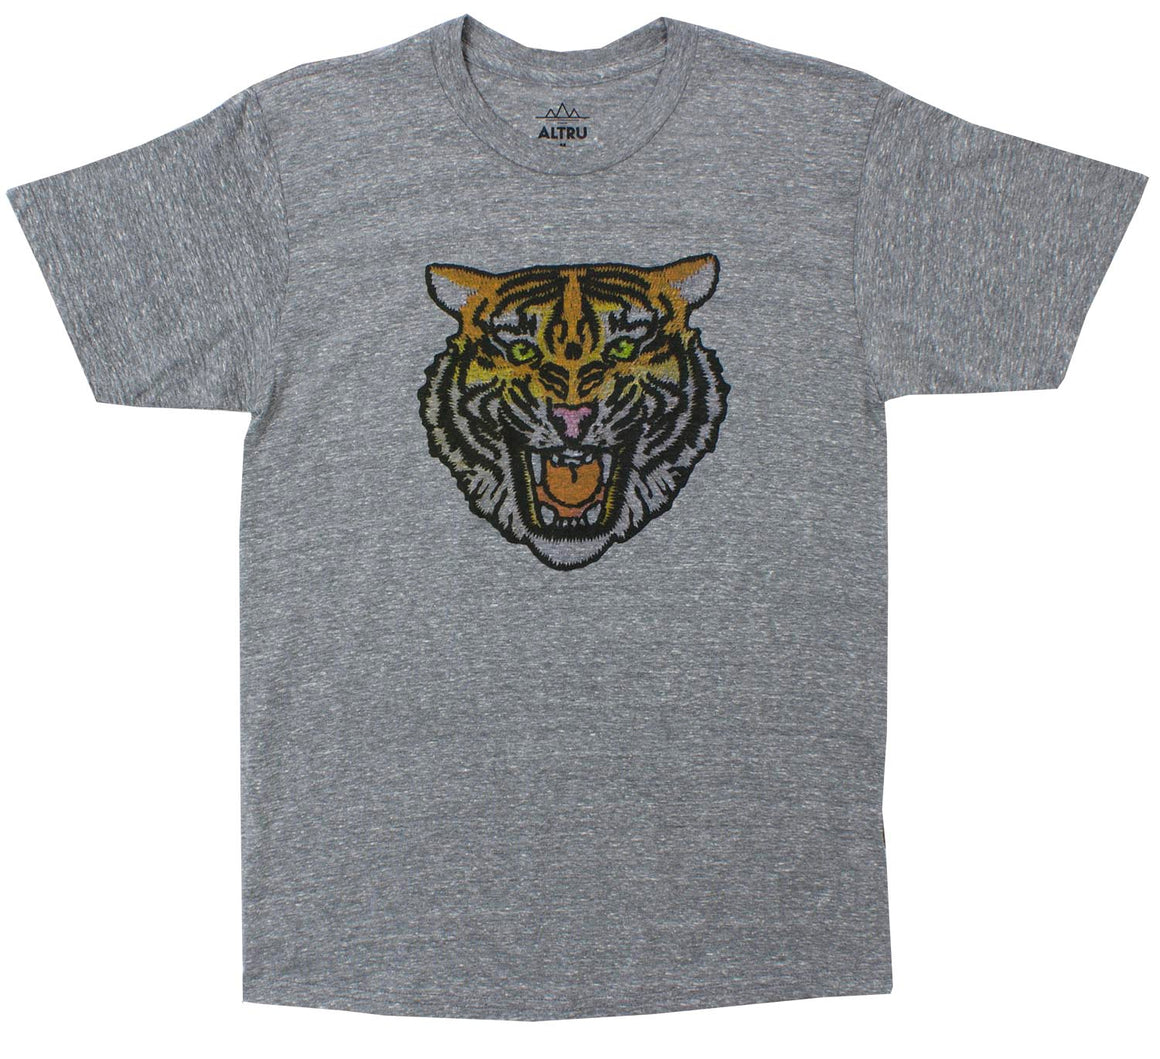 Angry Tiger Graphic Tee in Grey by Altru Apparel